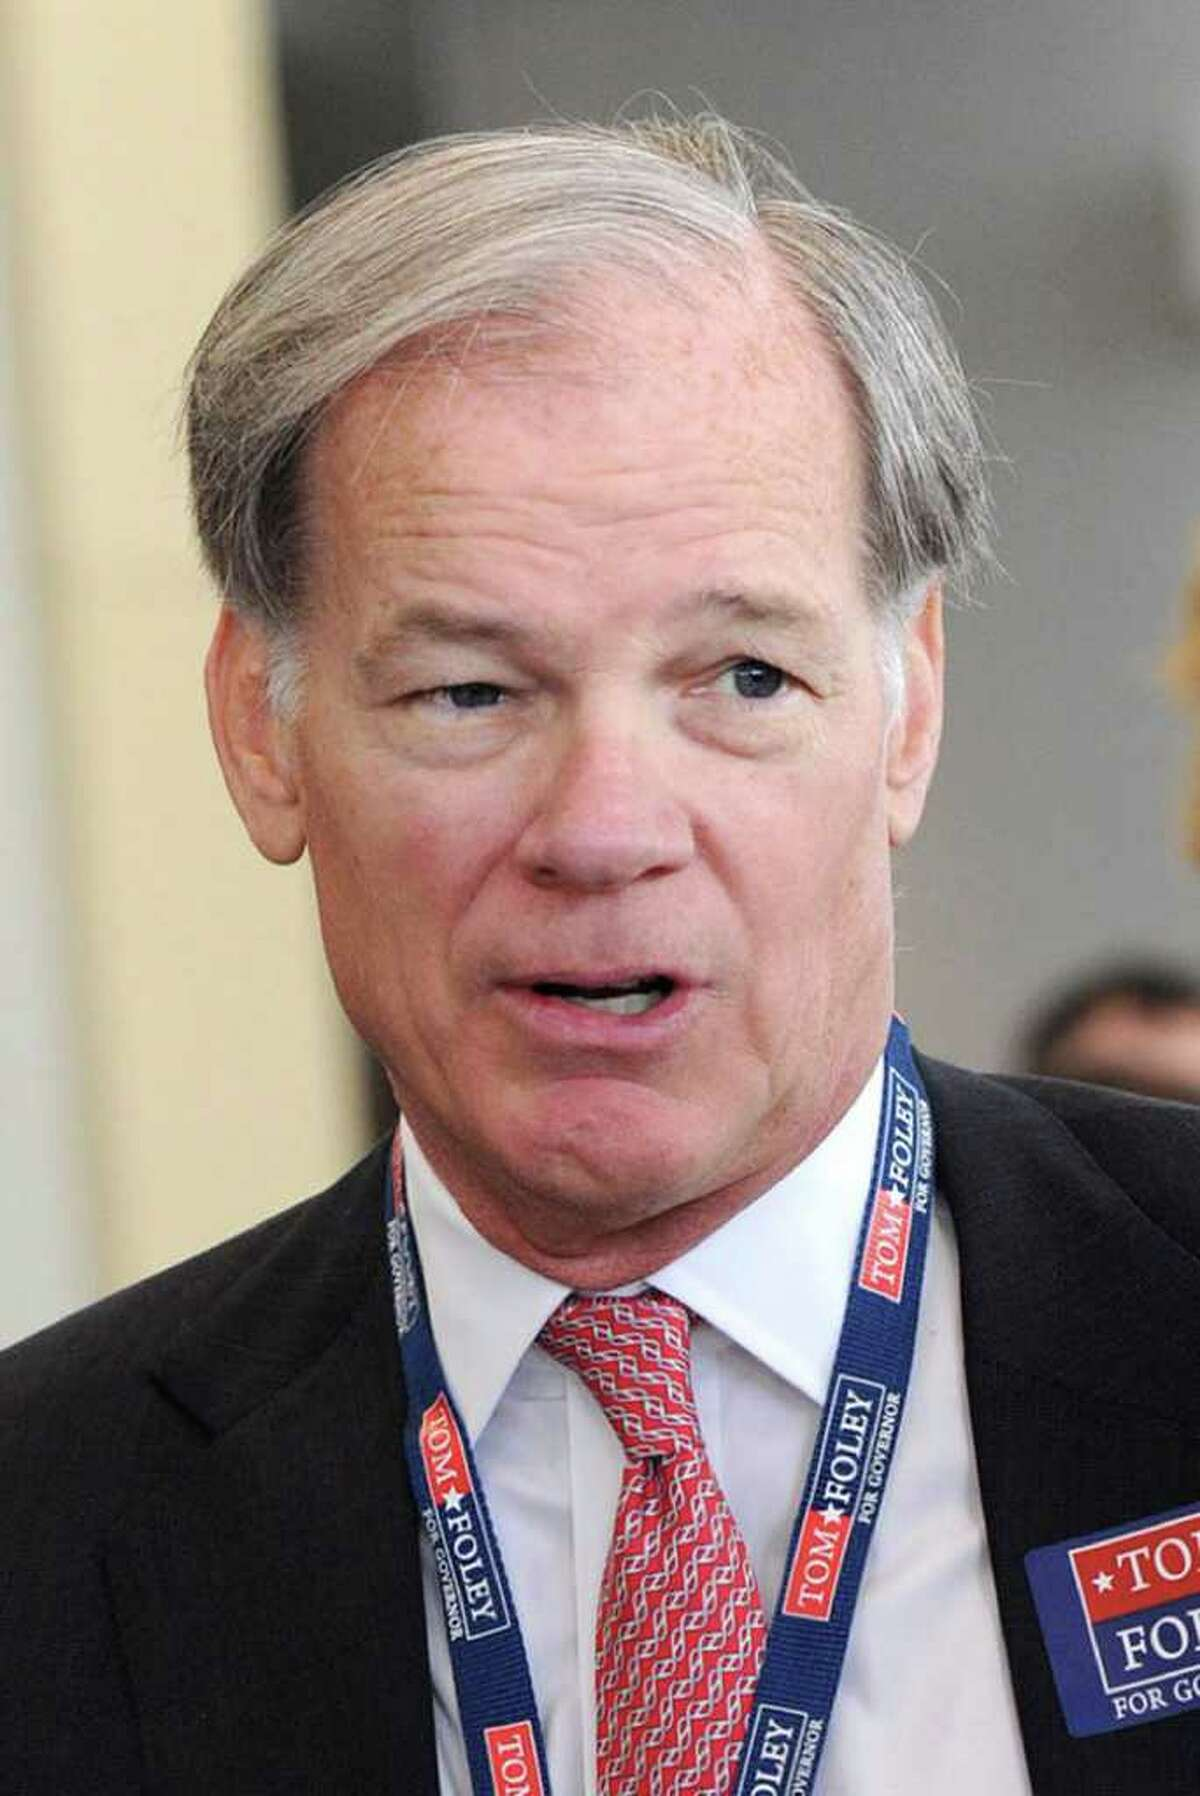 Tom Foley, Republican candidate for governor in Connecticut.